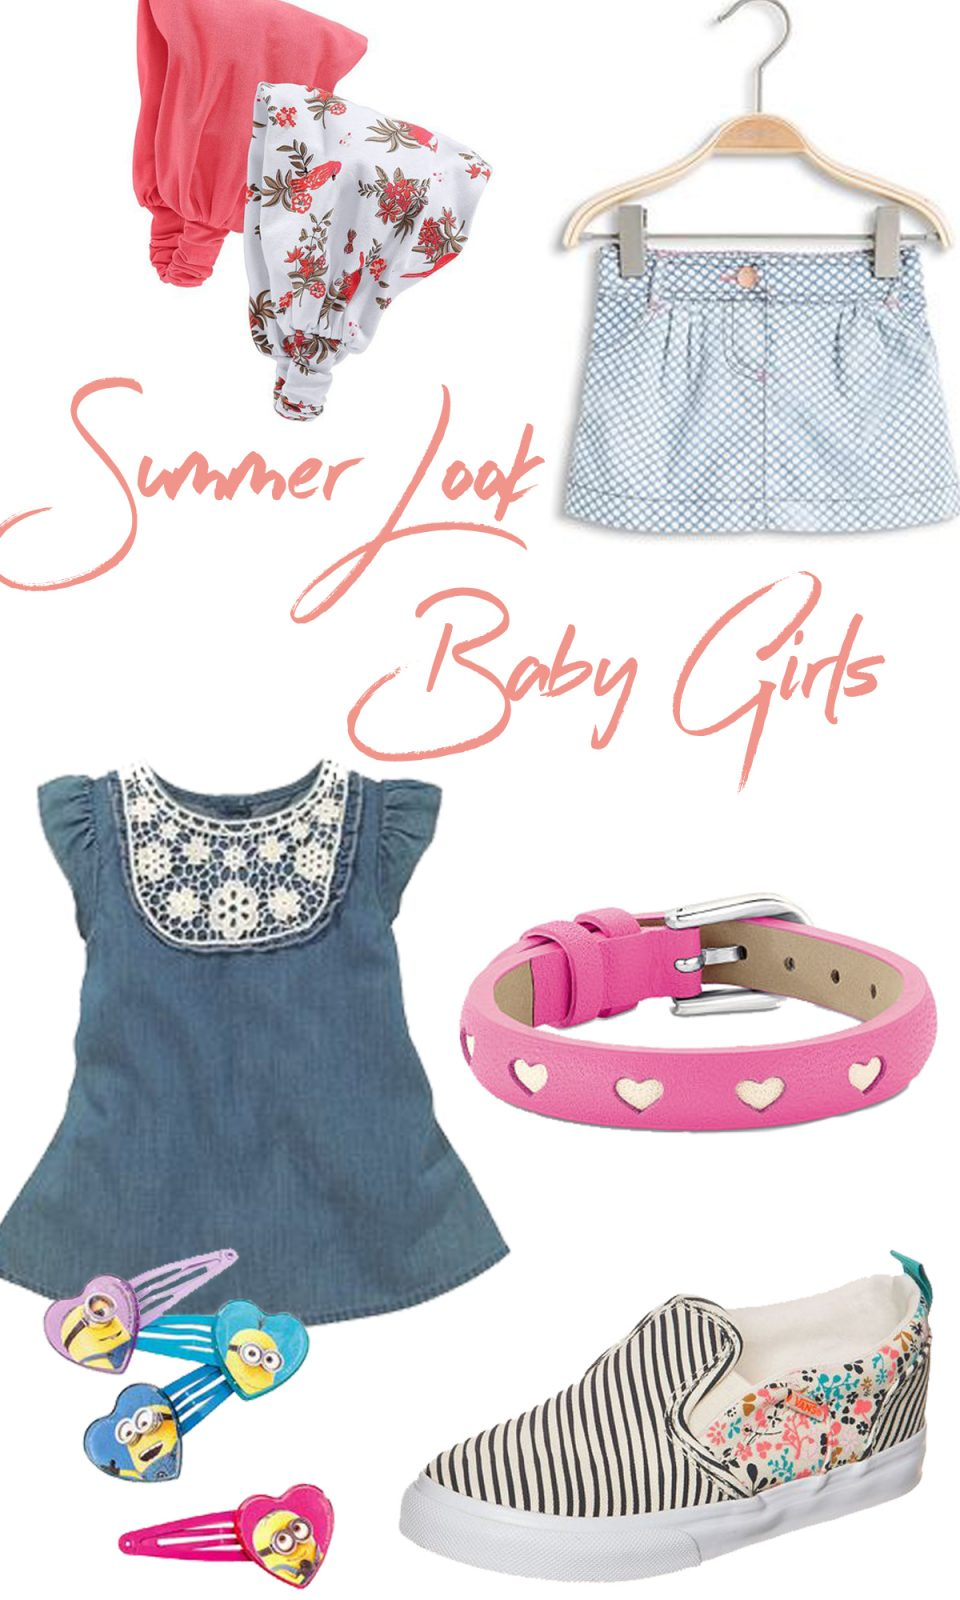 Otto Sommer Outfits Summer Look Baby Girls